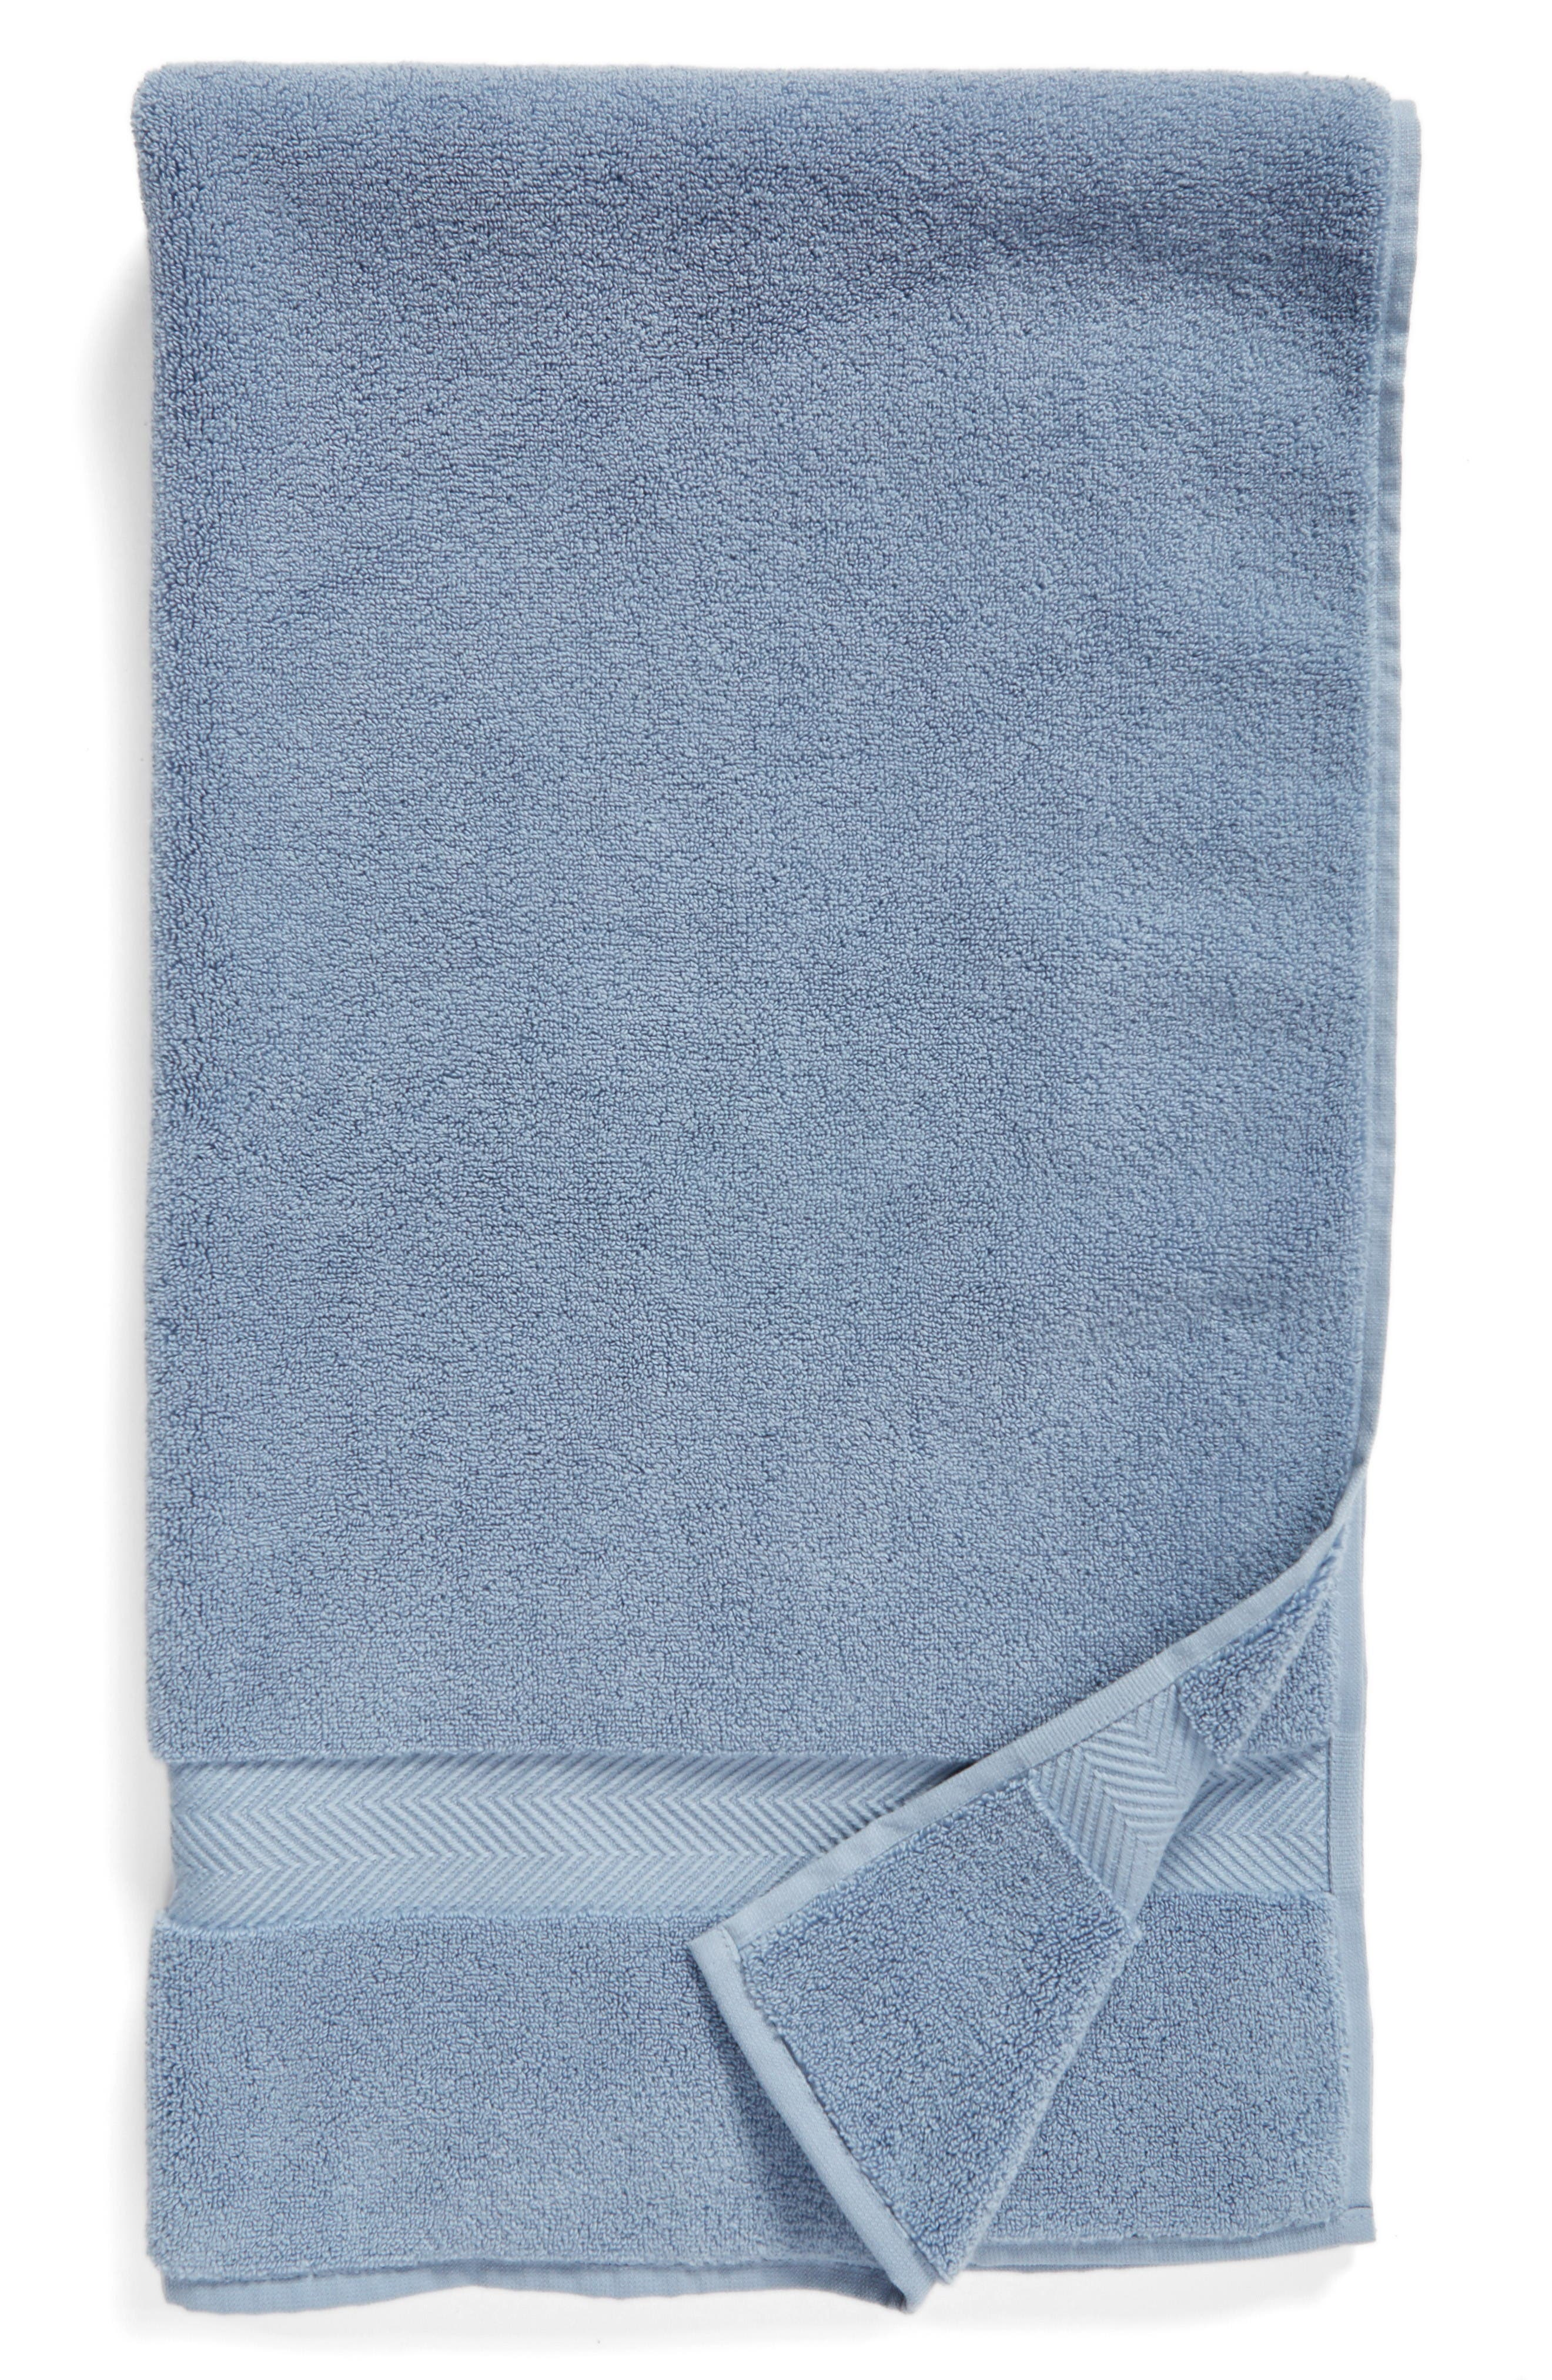 Nordstrom at Home Hydrocotton Bath Towel (2 for $49)